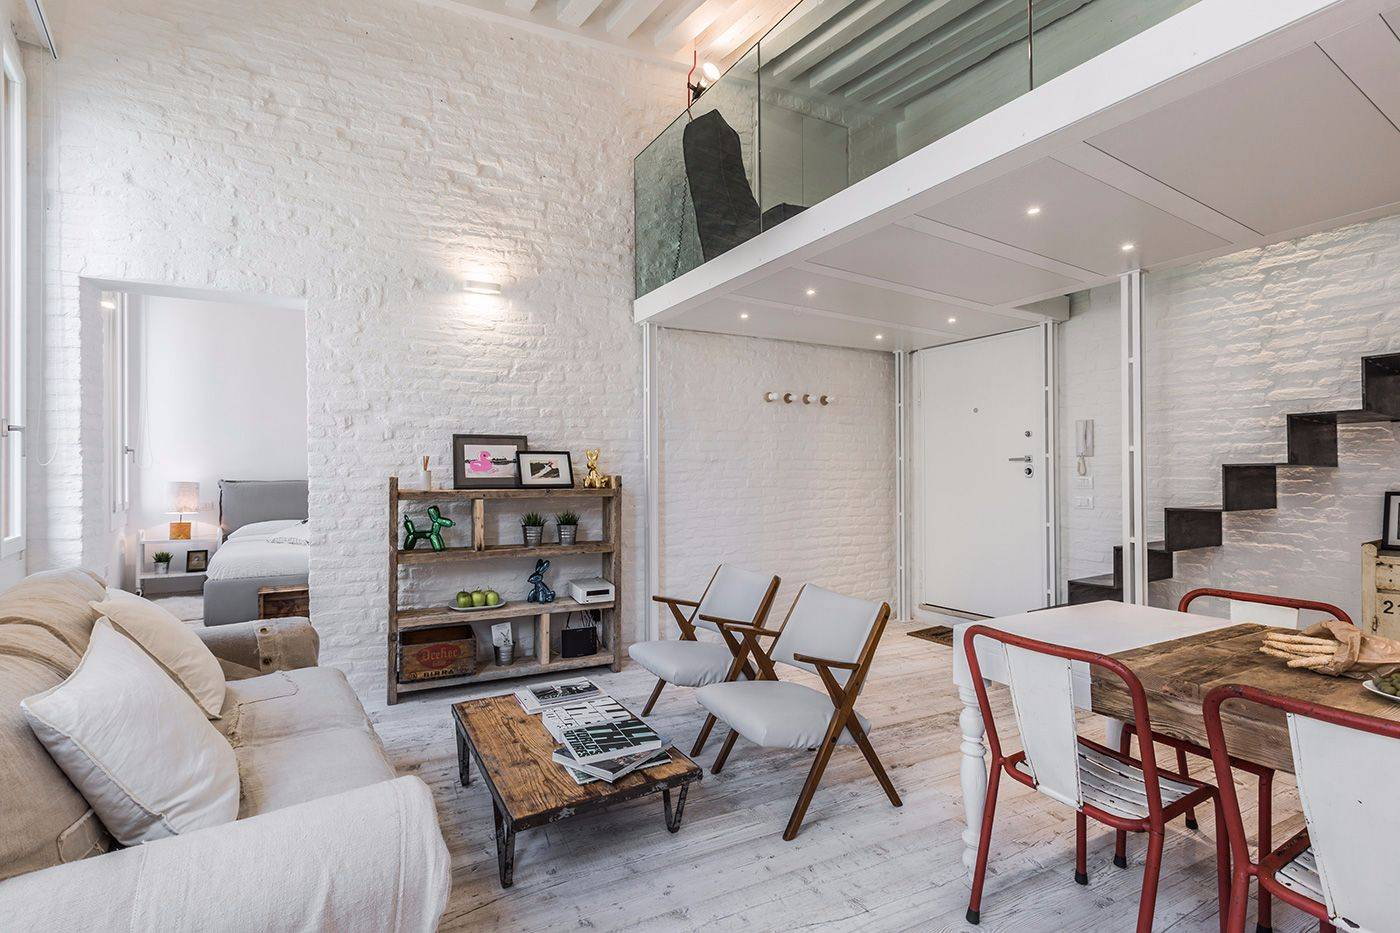 the Bernini apartment is a great example of contamporary design